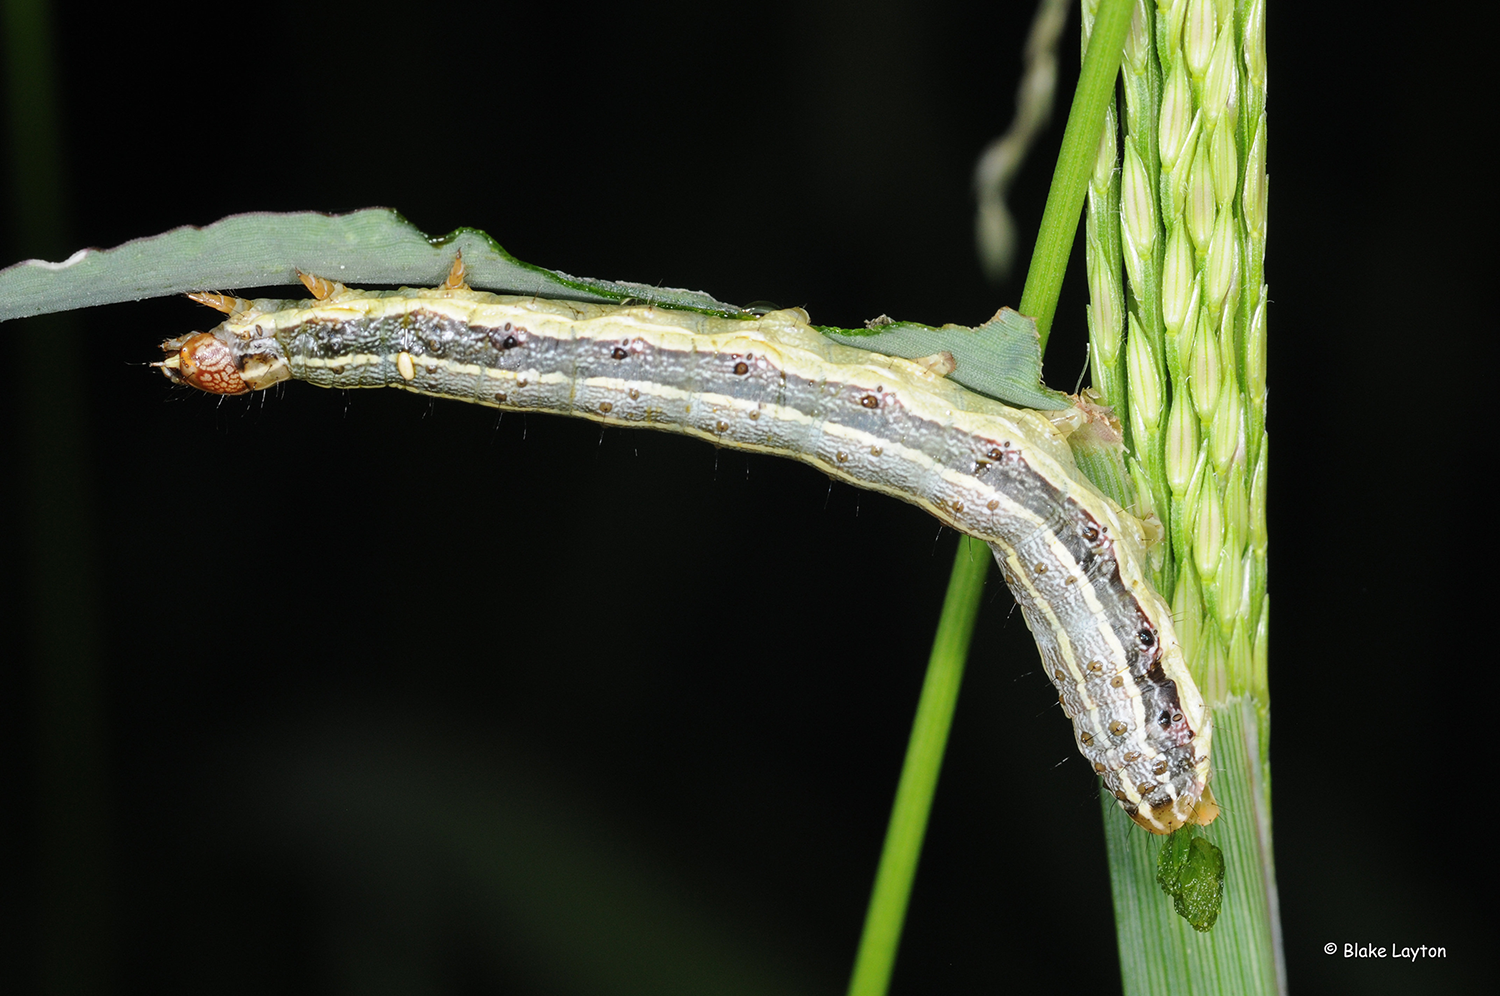 A fall armyworm on a green stalk.